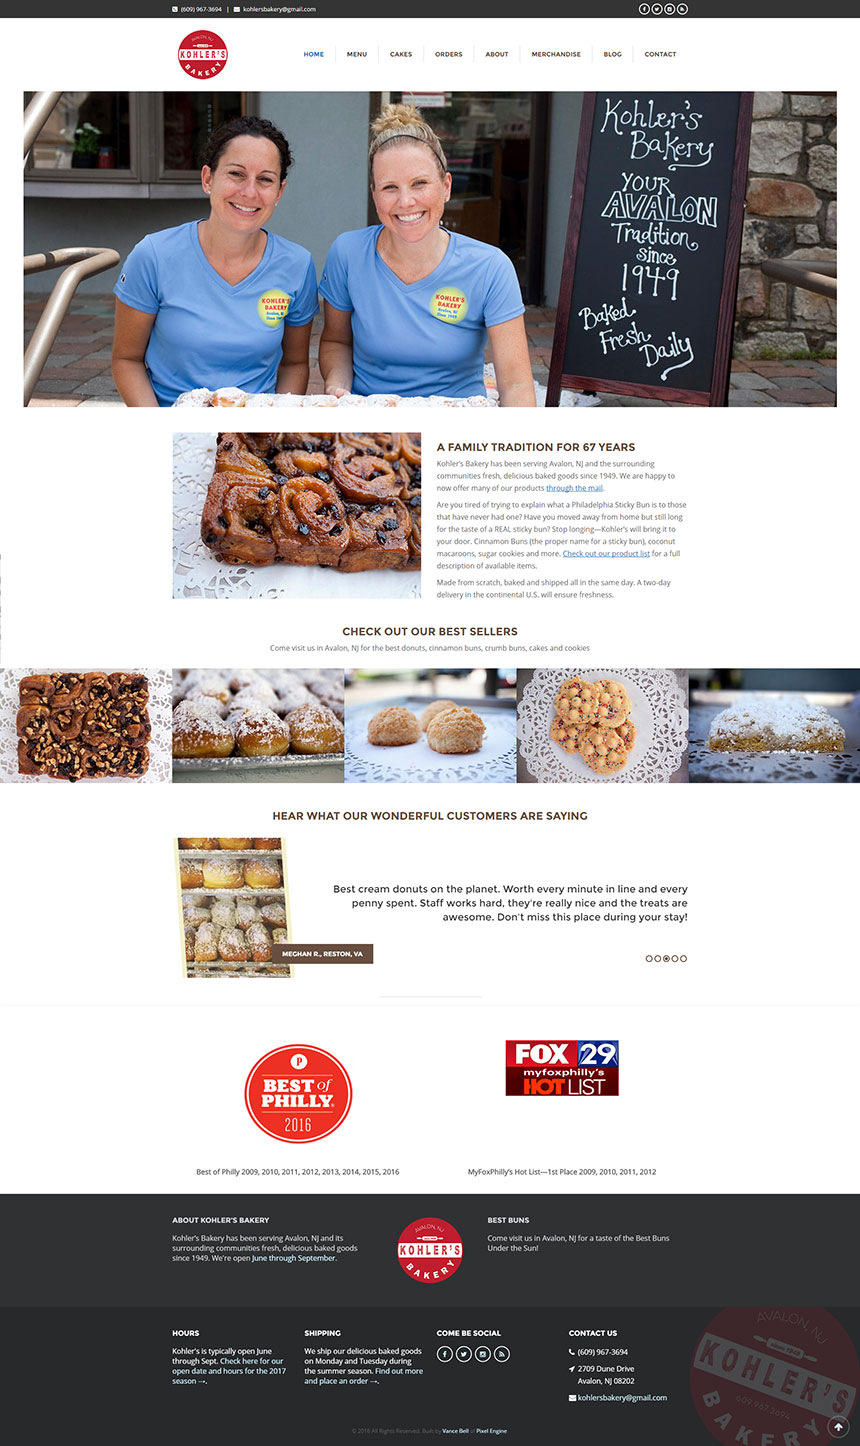 Kohler's Bakery Website Design - Colleen and Katie